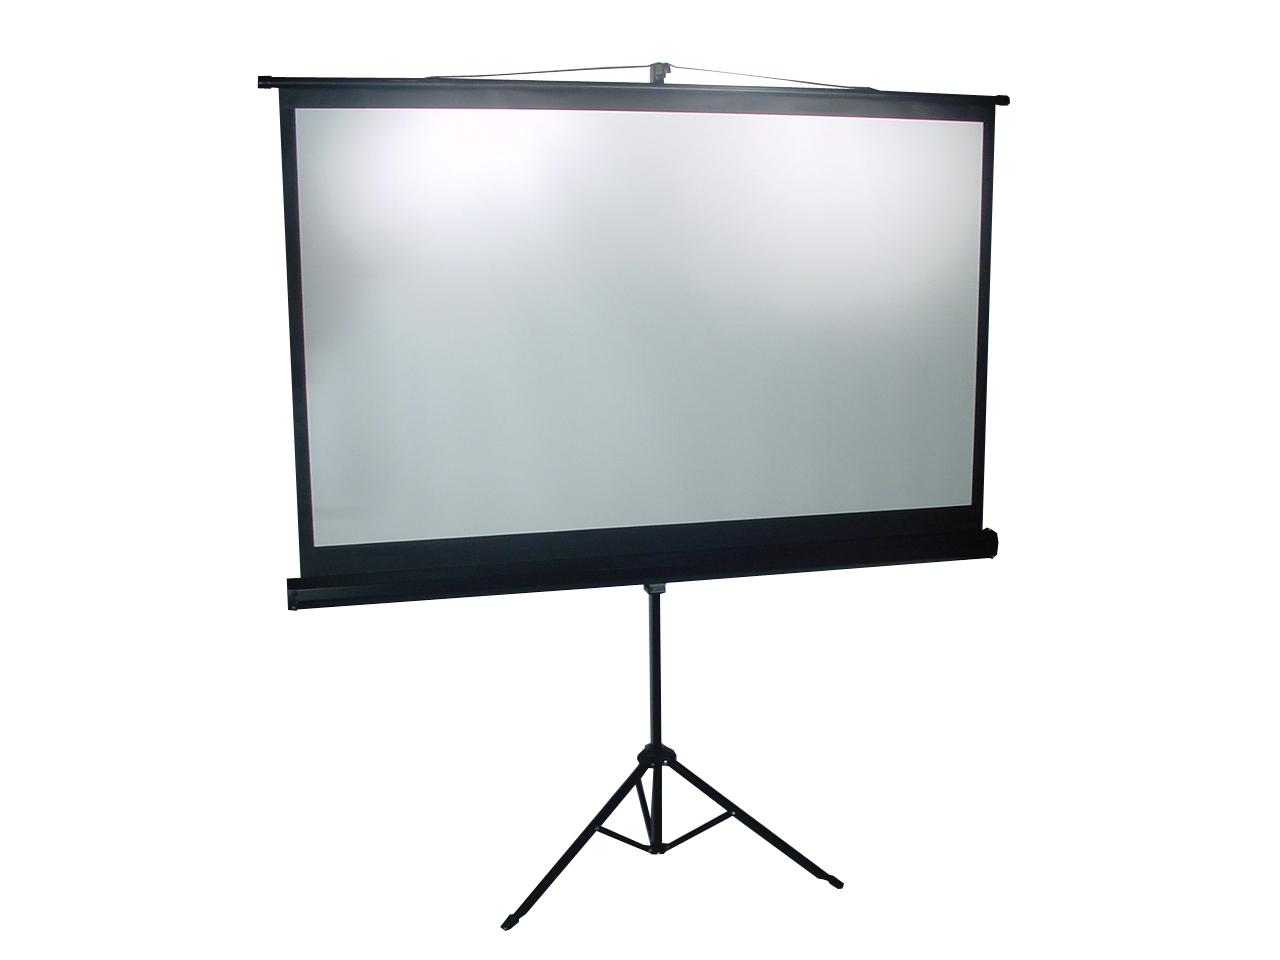 65-Portable-Tripod-Projector-Screen-16-9-Aspect-Ratio-Foldown